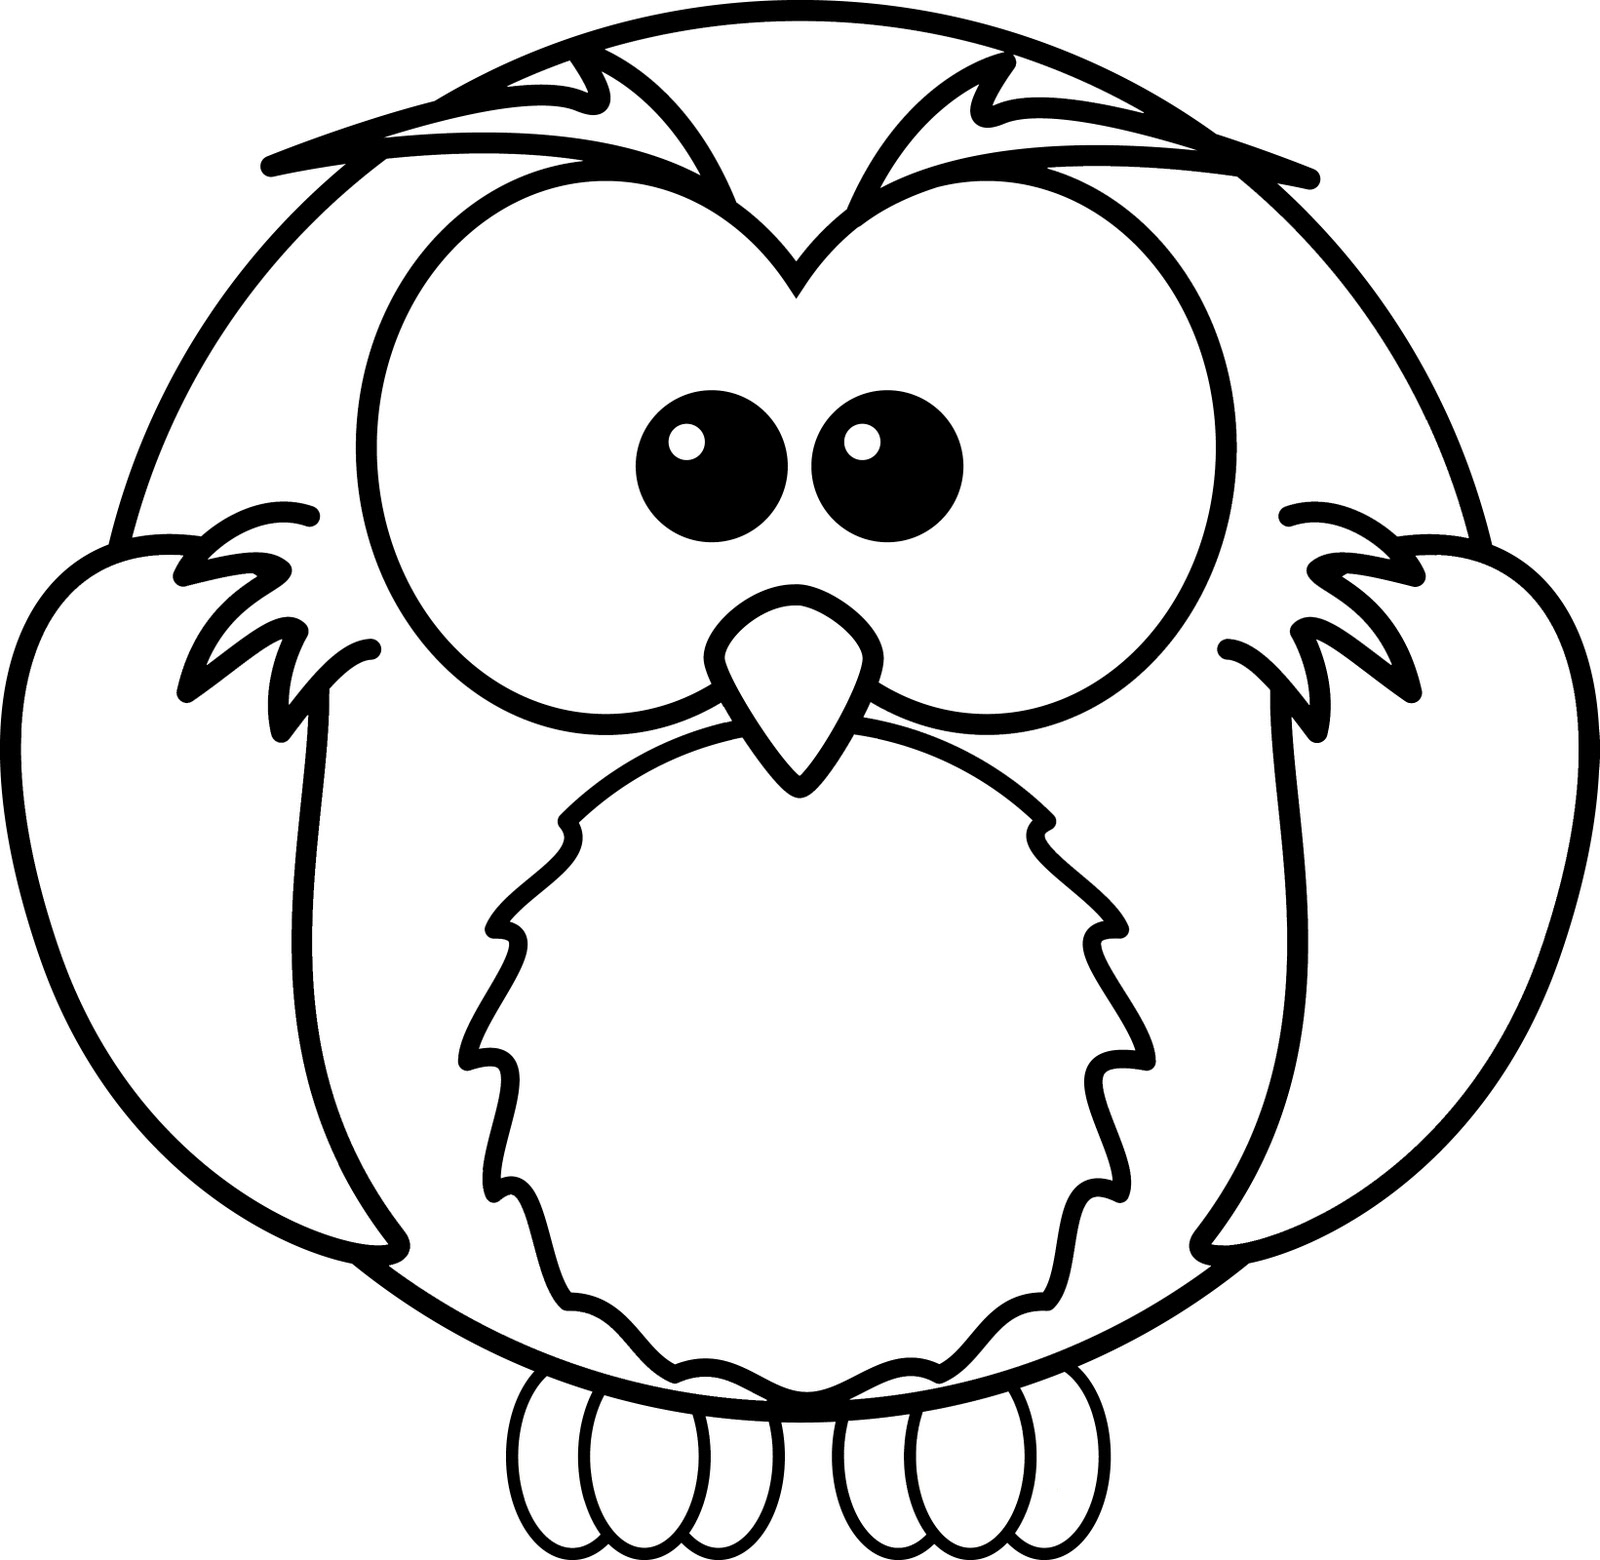 owl coloring picture download burrowing owl coloring for free designlooter picture coloring owl